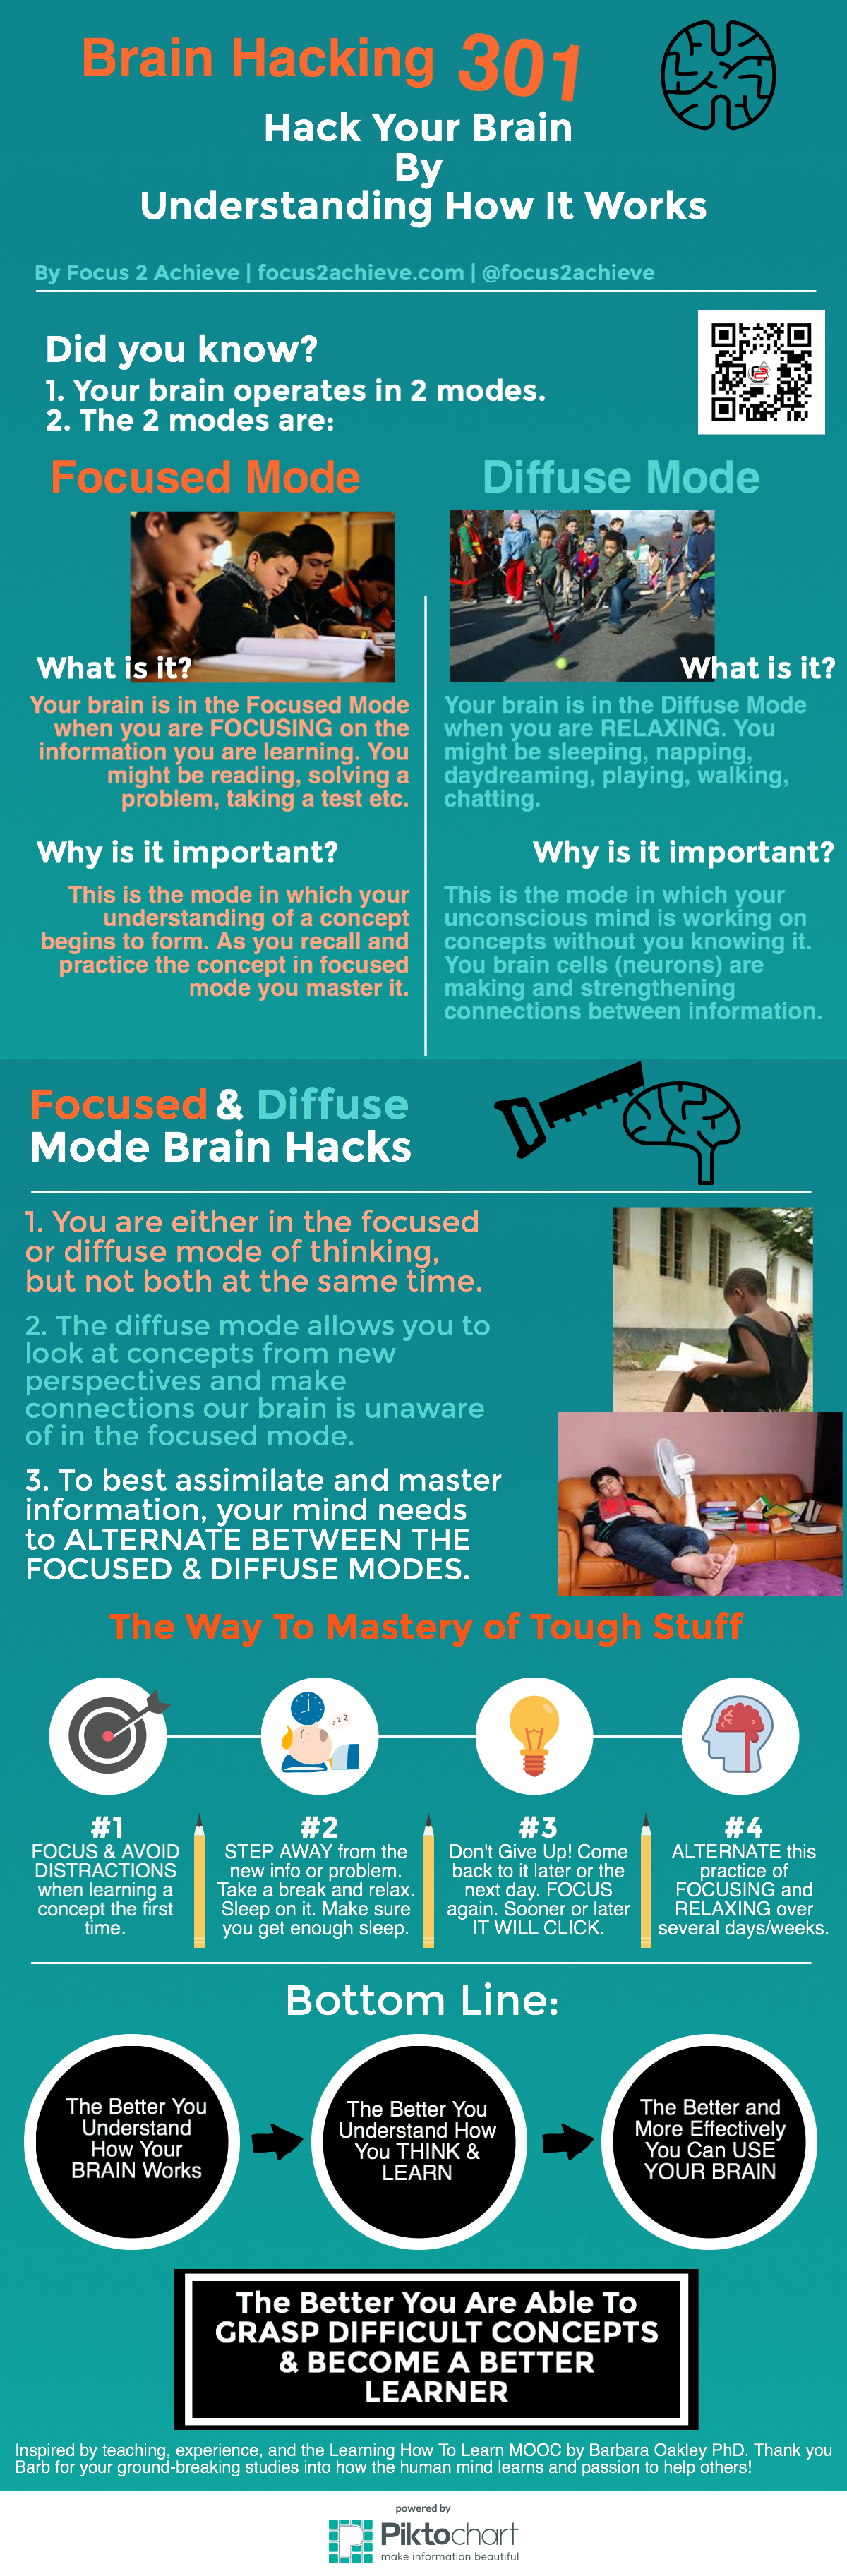 Focused and Diffuse Thinking Modes Infographic